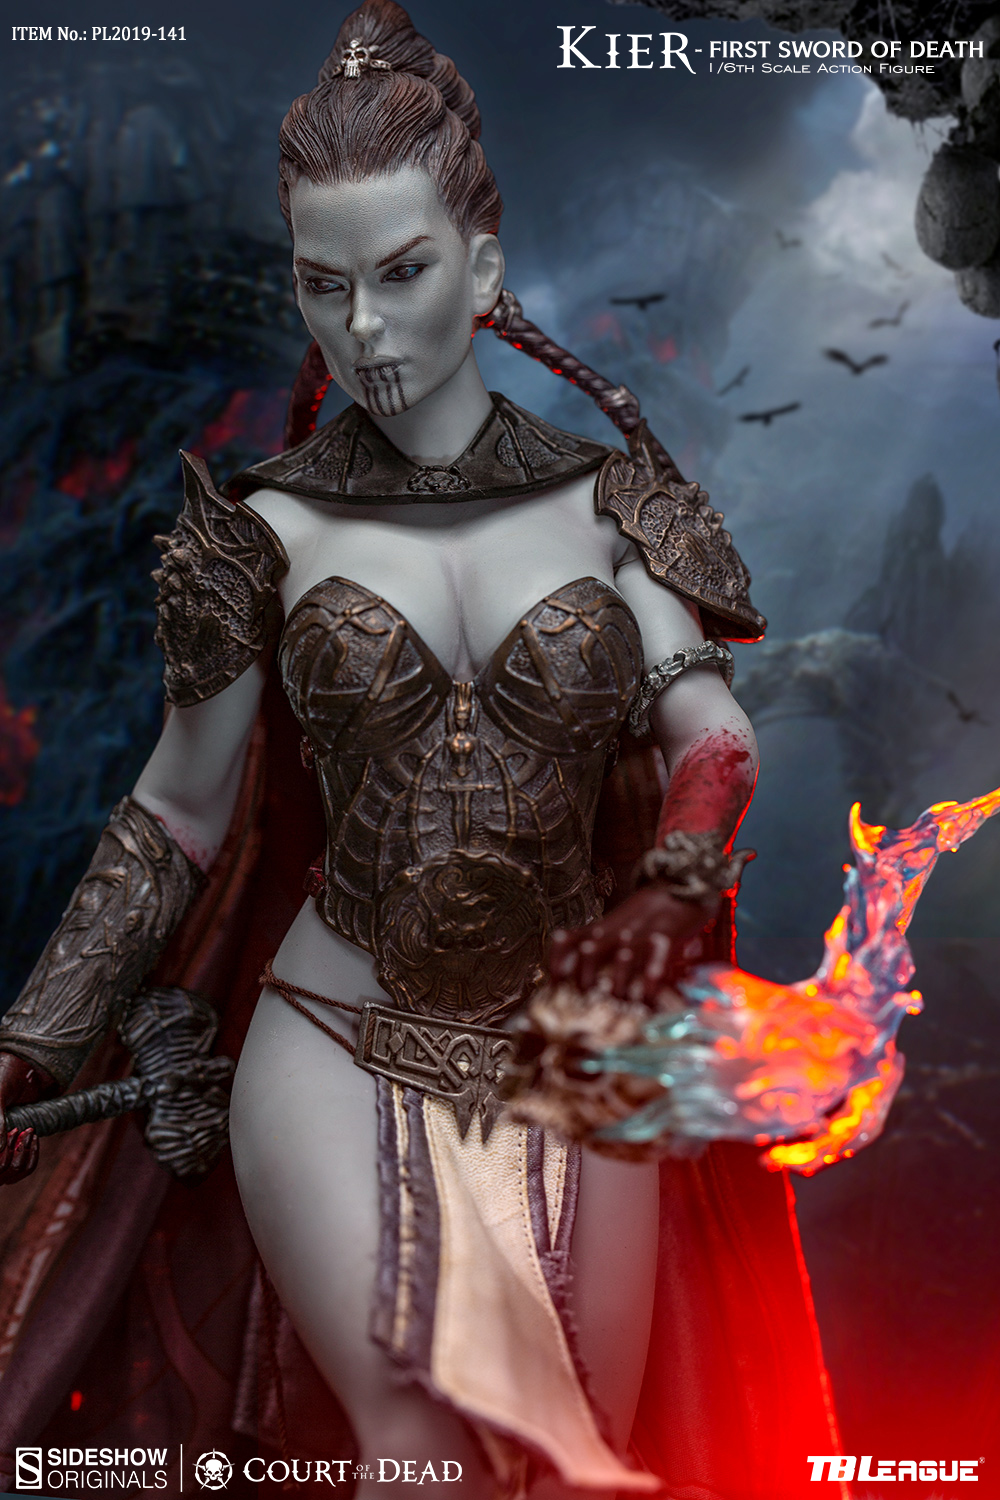 horror - NEW PRODUCT: TBLeague & Sideshow: 1/6 Court of the Dead - Valkyrie Cole / Kier movable doll (PL2019-141) 16260911